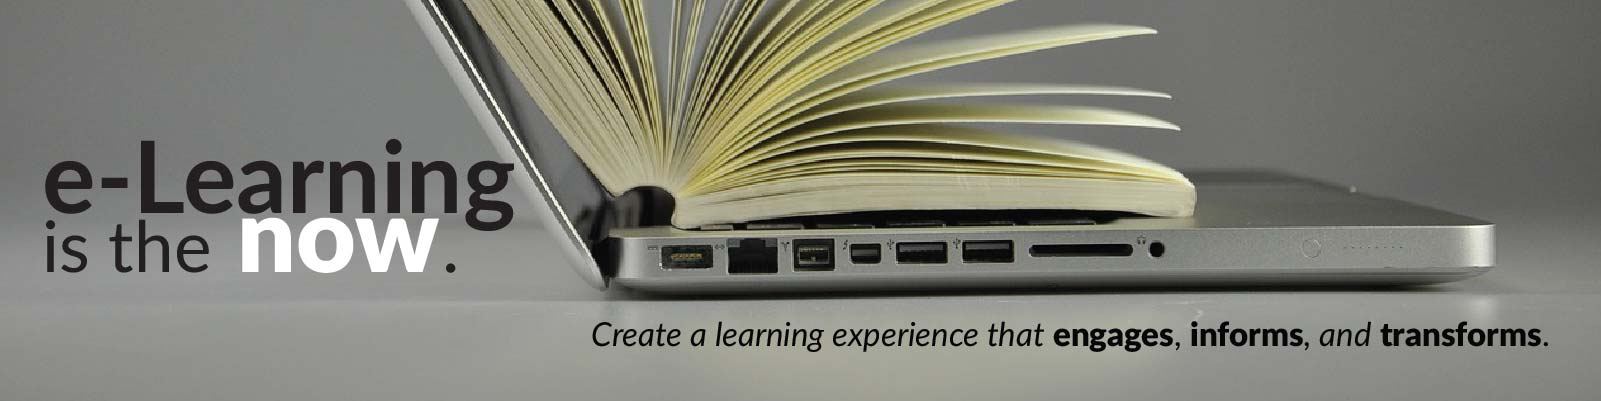 CATMEDIA e-Learning Solutions E-Learning is the now